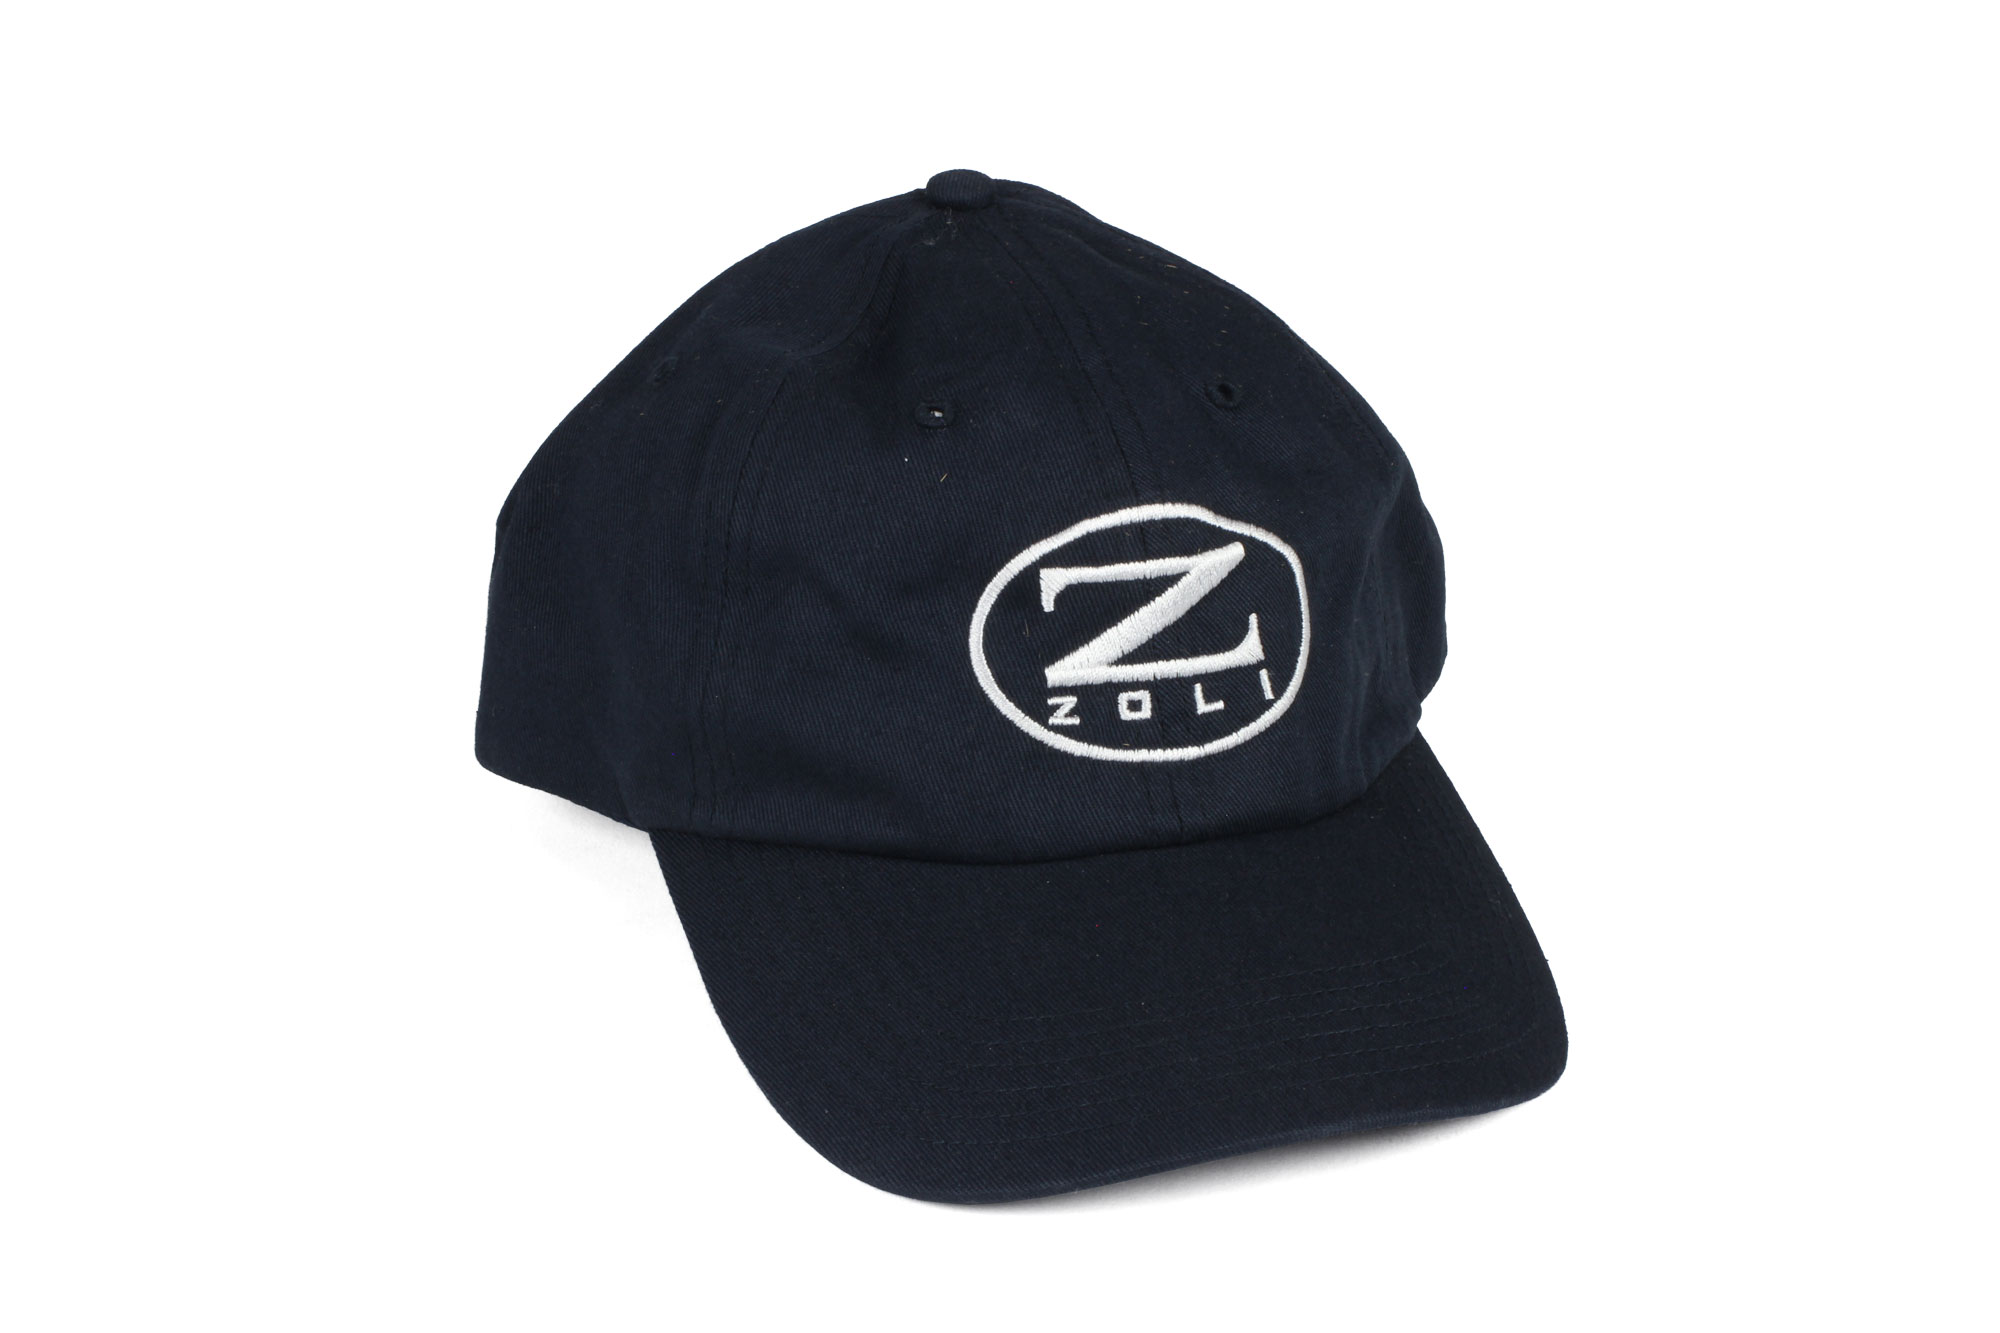 Zoli Embroidered Unstructured Hat (Navy)